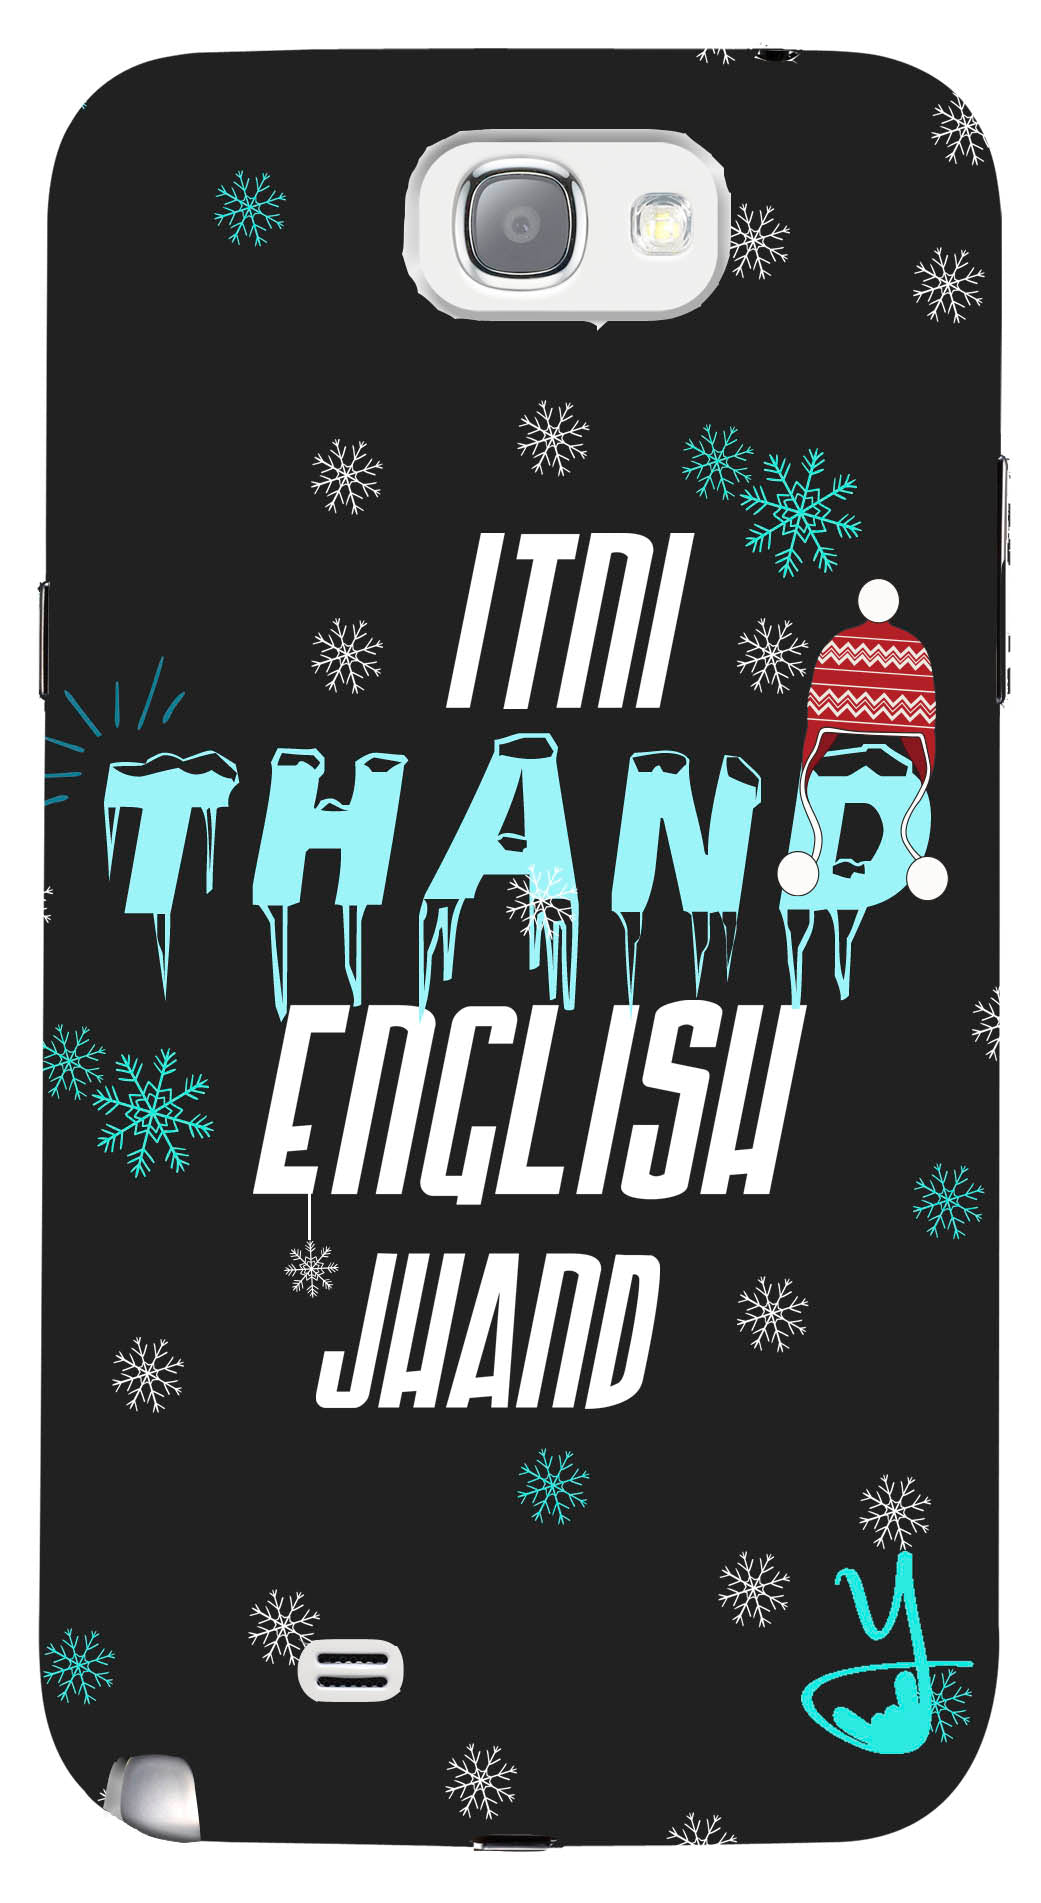 Itni Thand edition for Samsung galaxy note 2